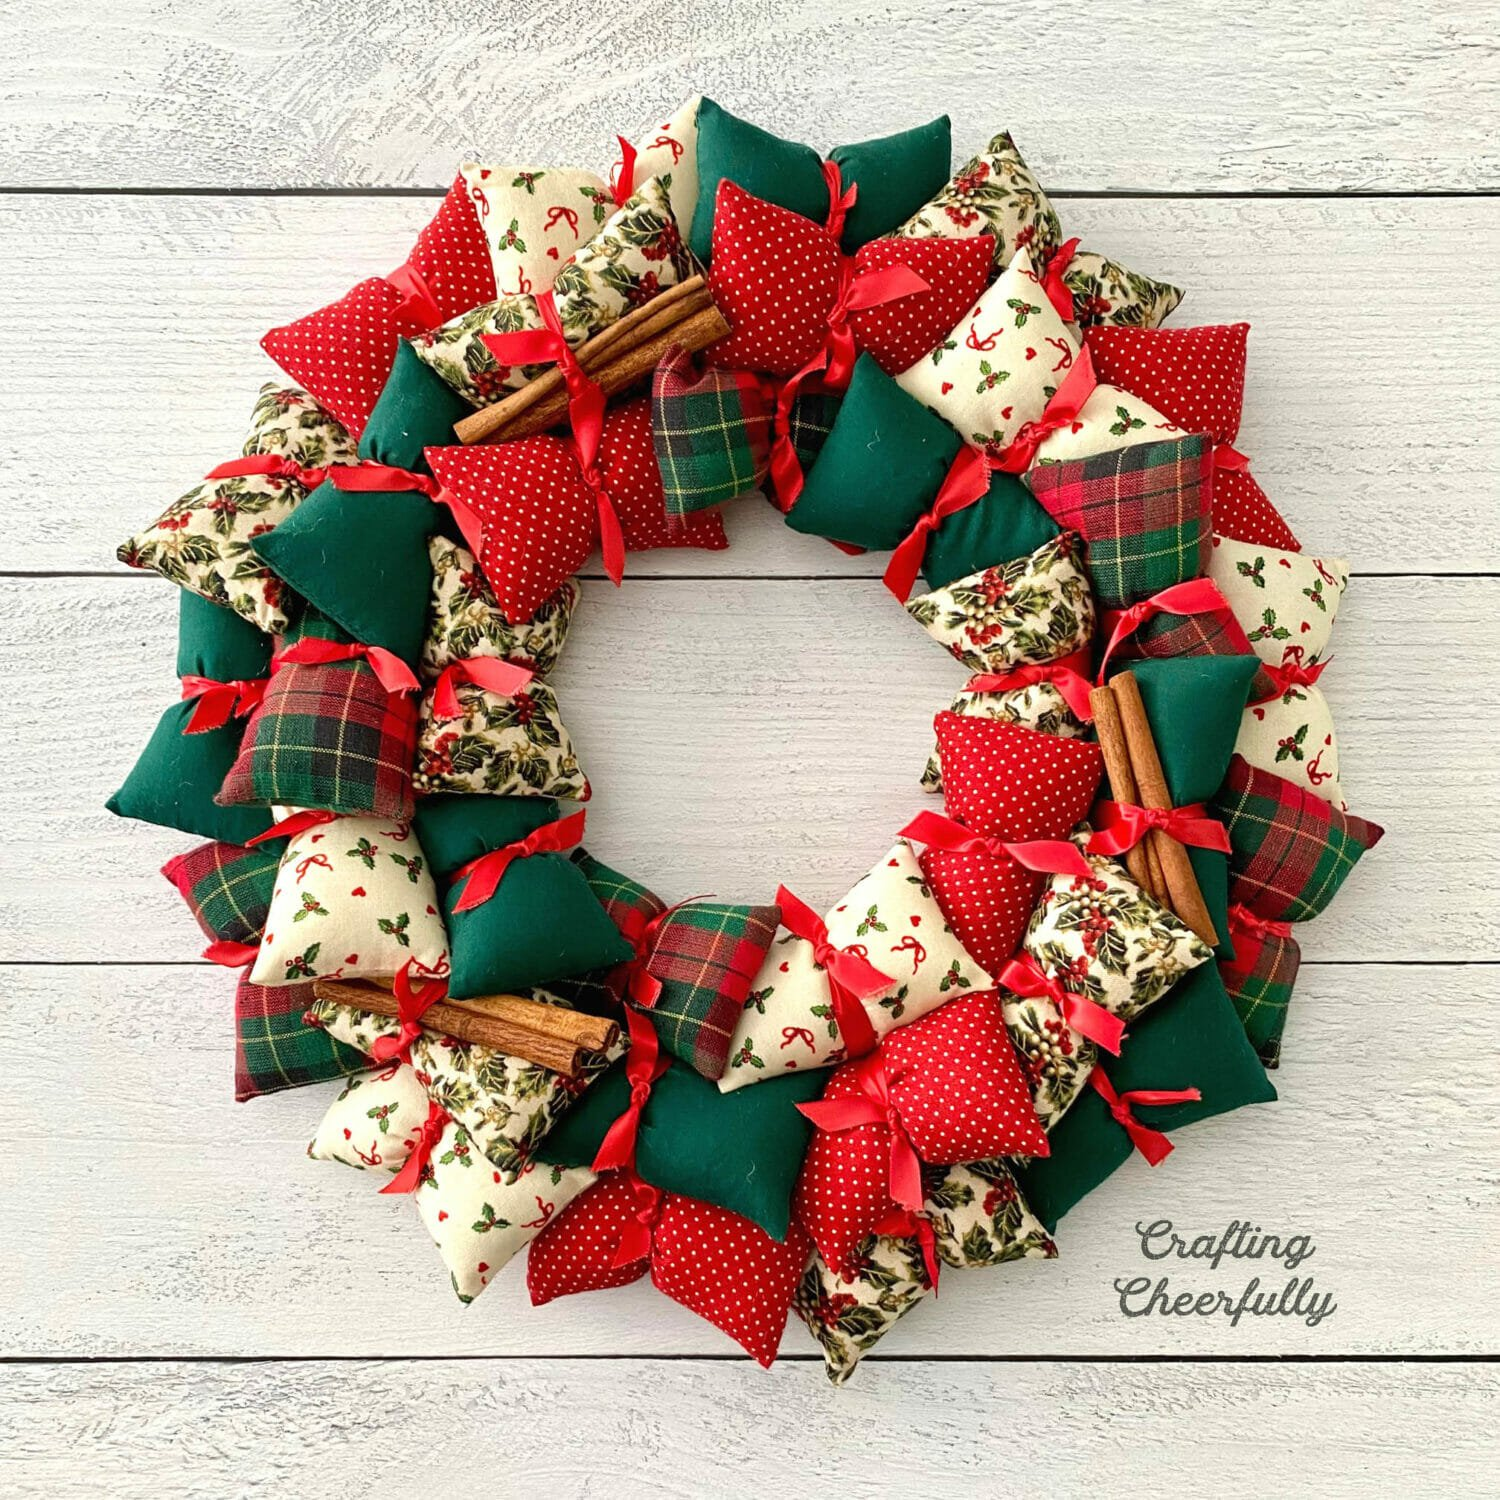 DIY holiday pillow wreath using Christmas fabrics in red, green and white lays on a white wooden table.